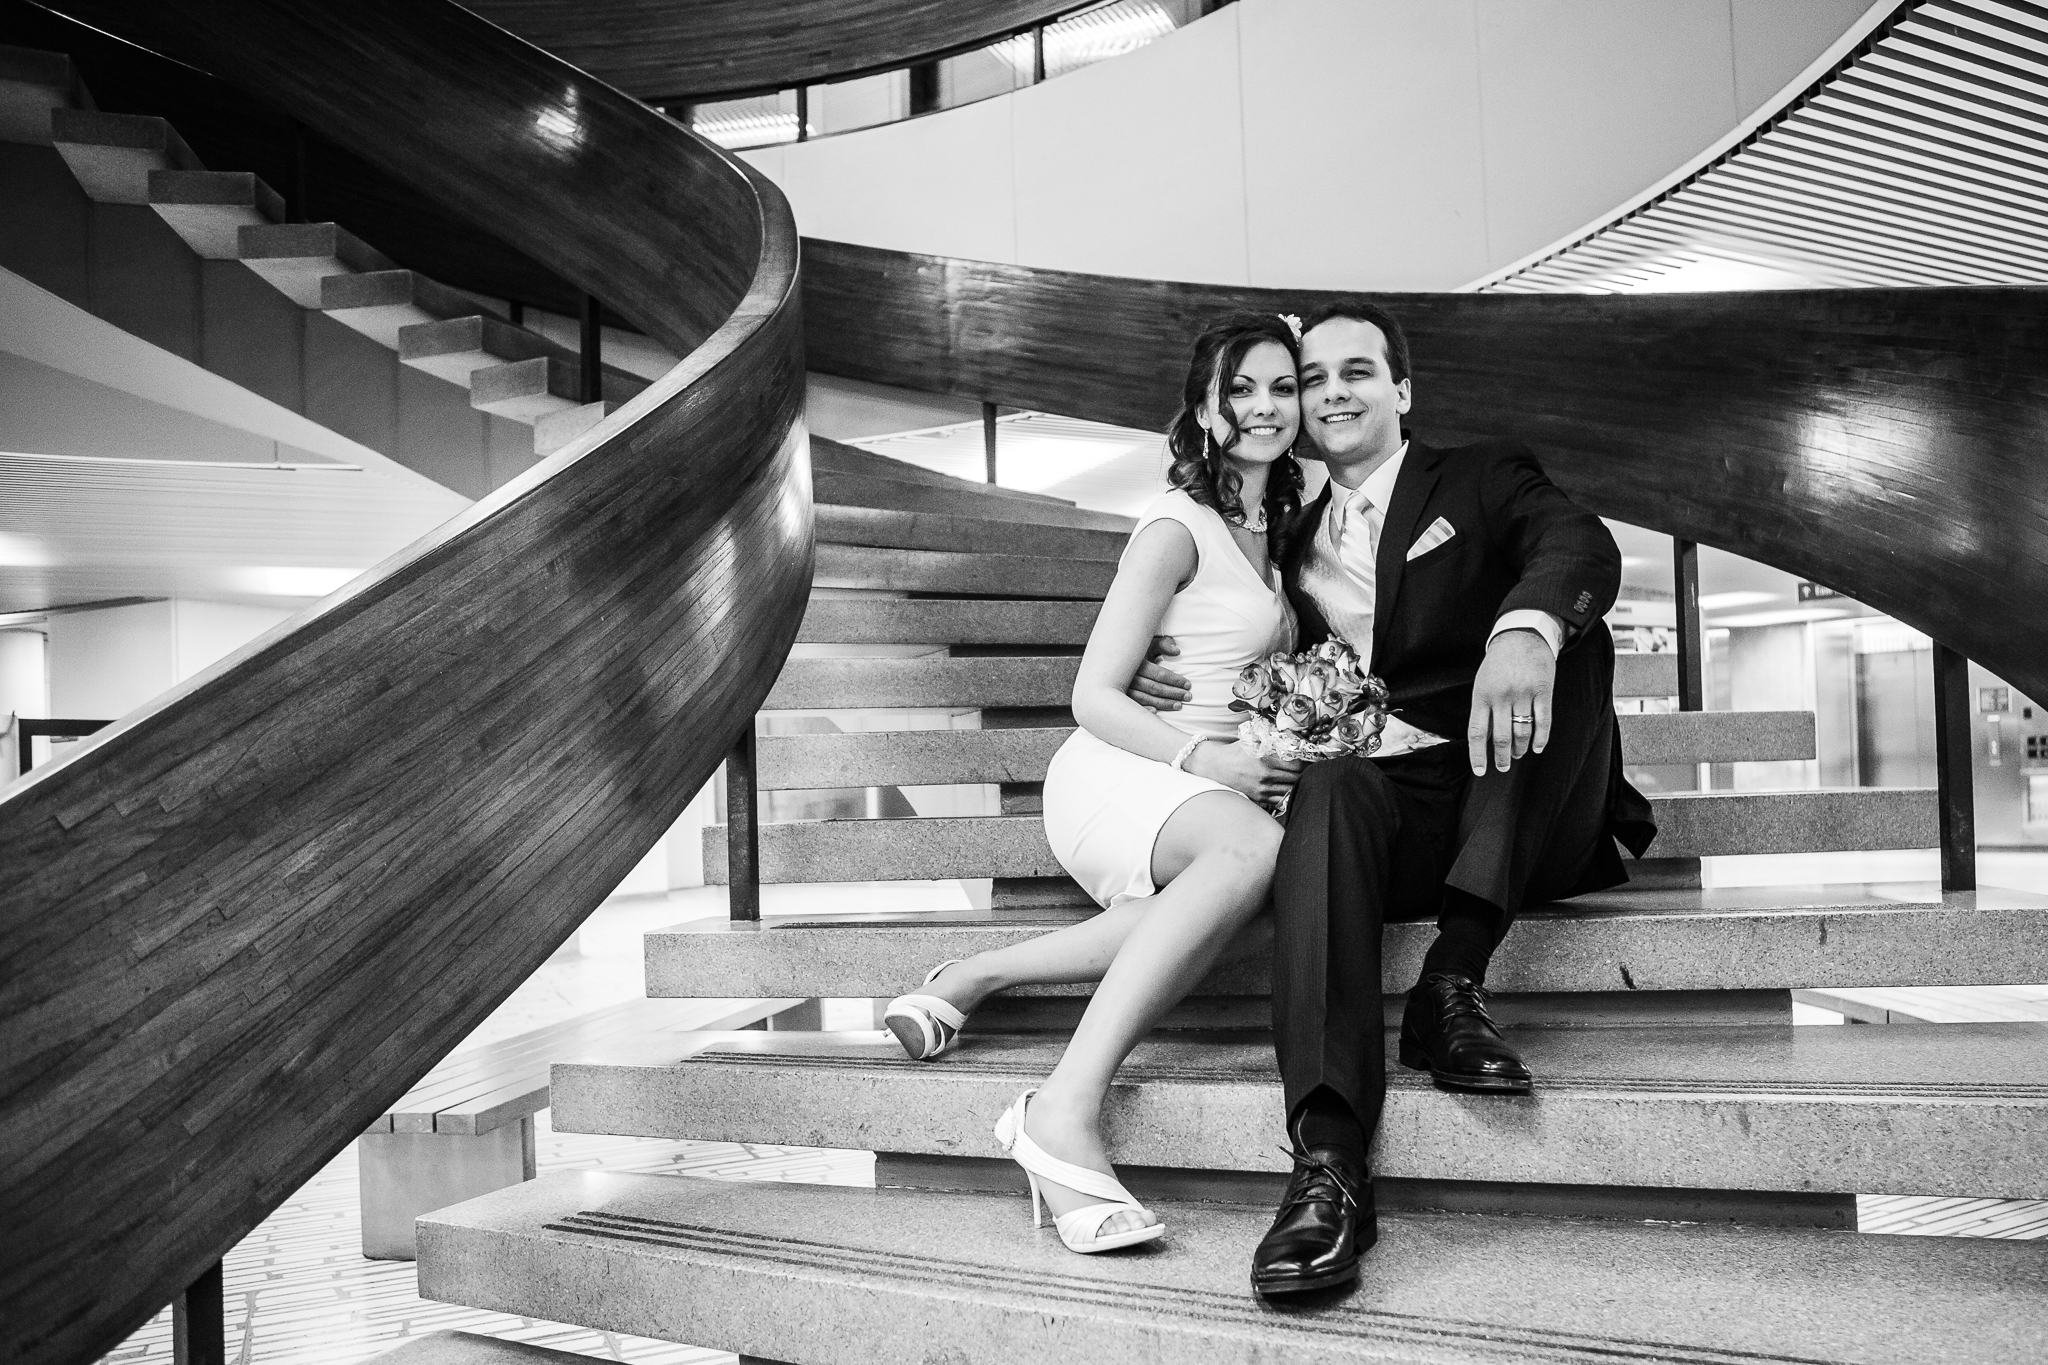 Toronto Wedding Photography - Zoya & Alexei -22.jpg